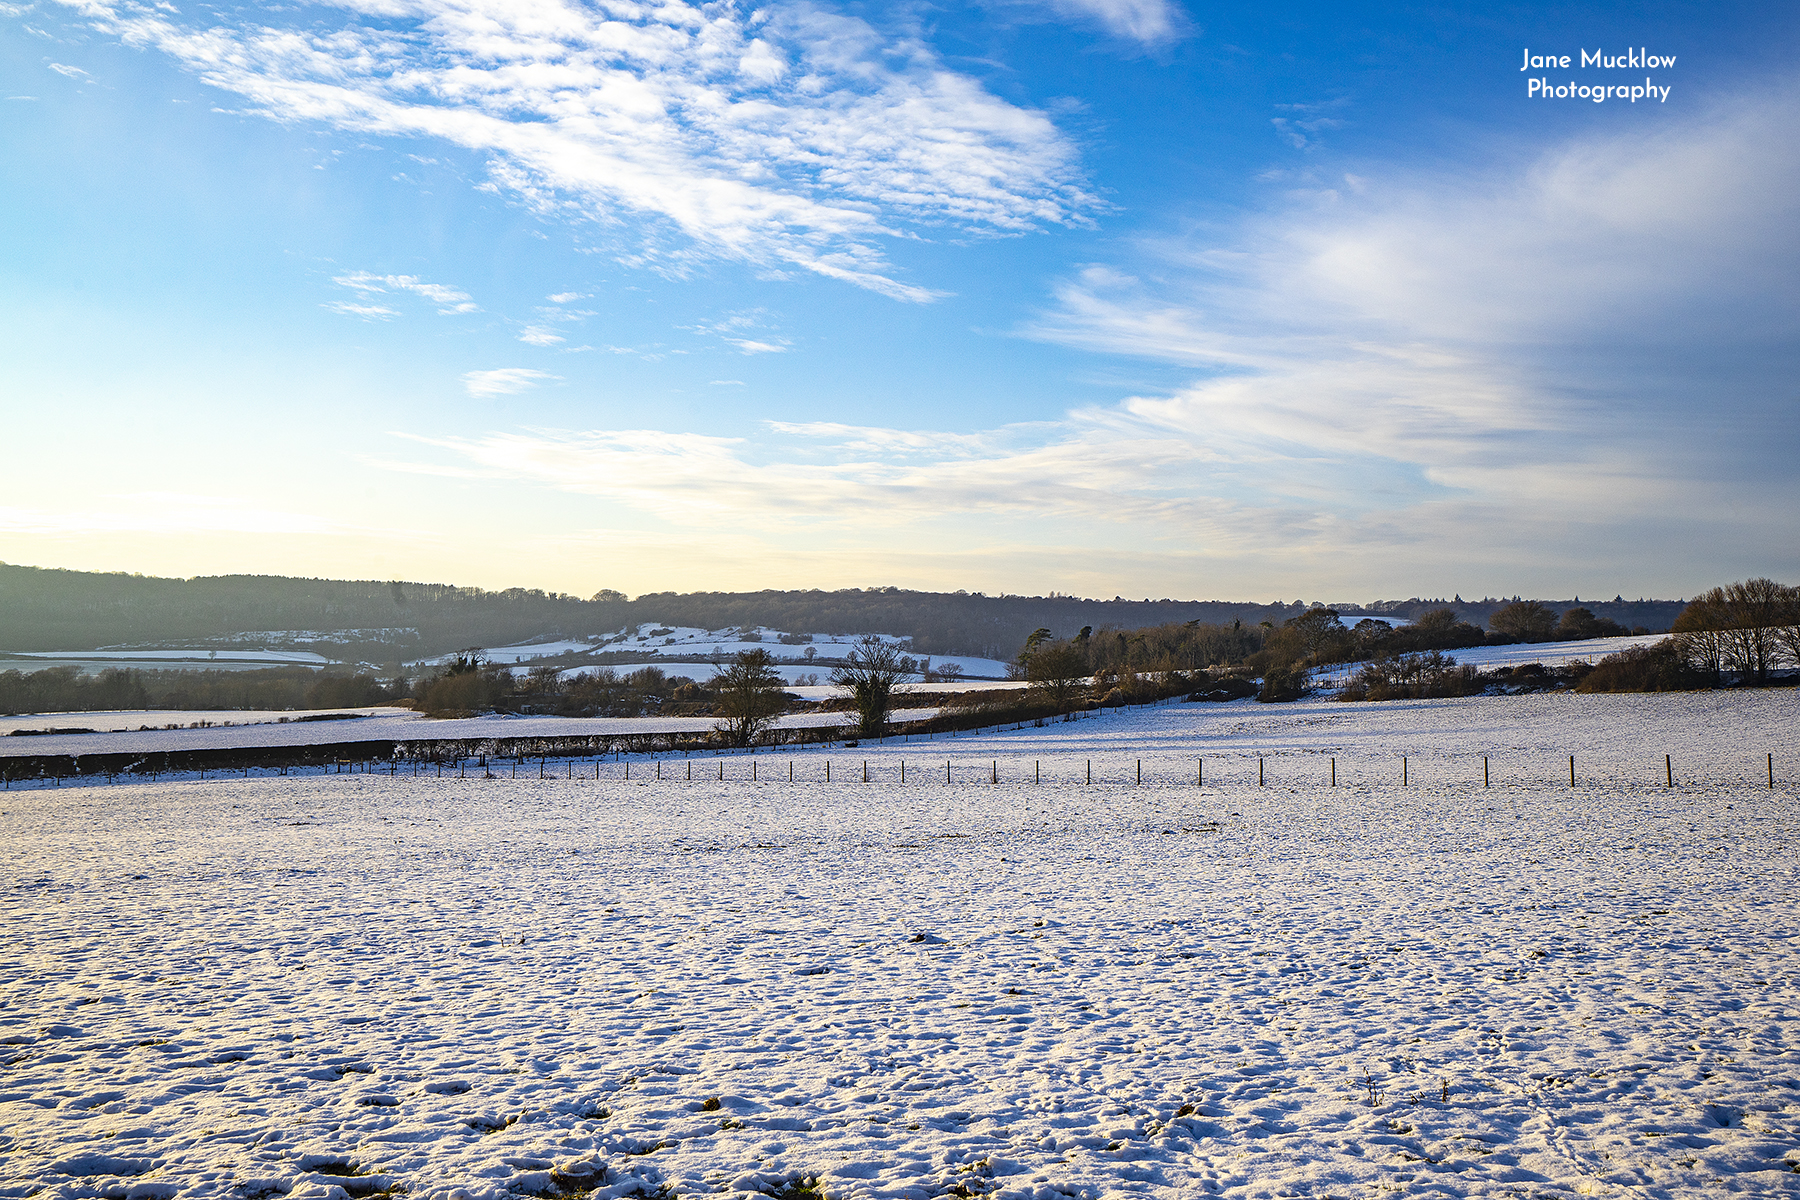 Photo of a snowy view to Shoreham from Otford, by Jane Mucklow